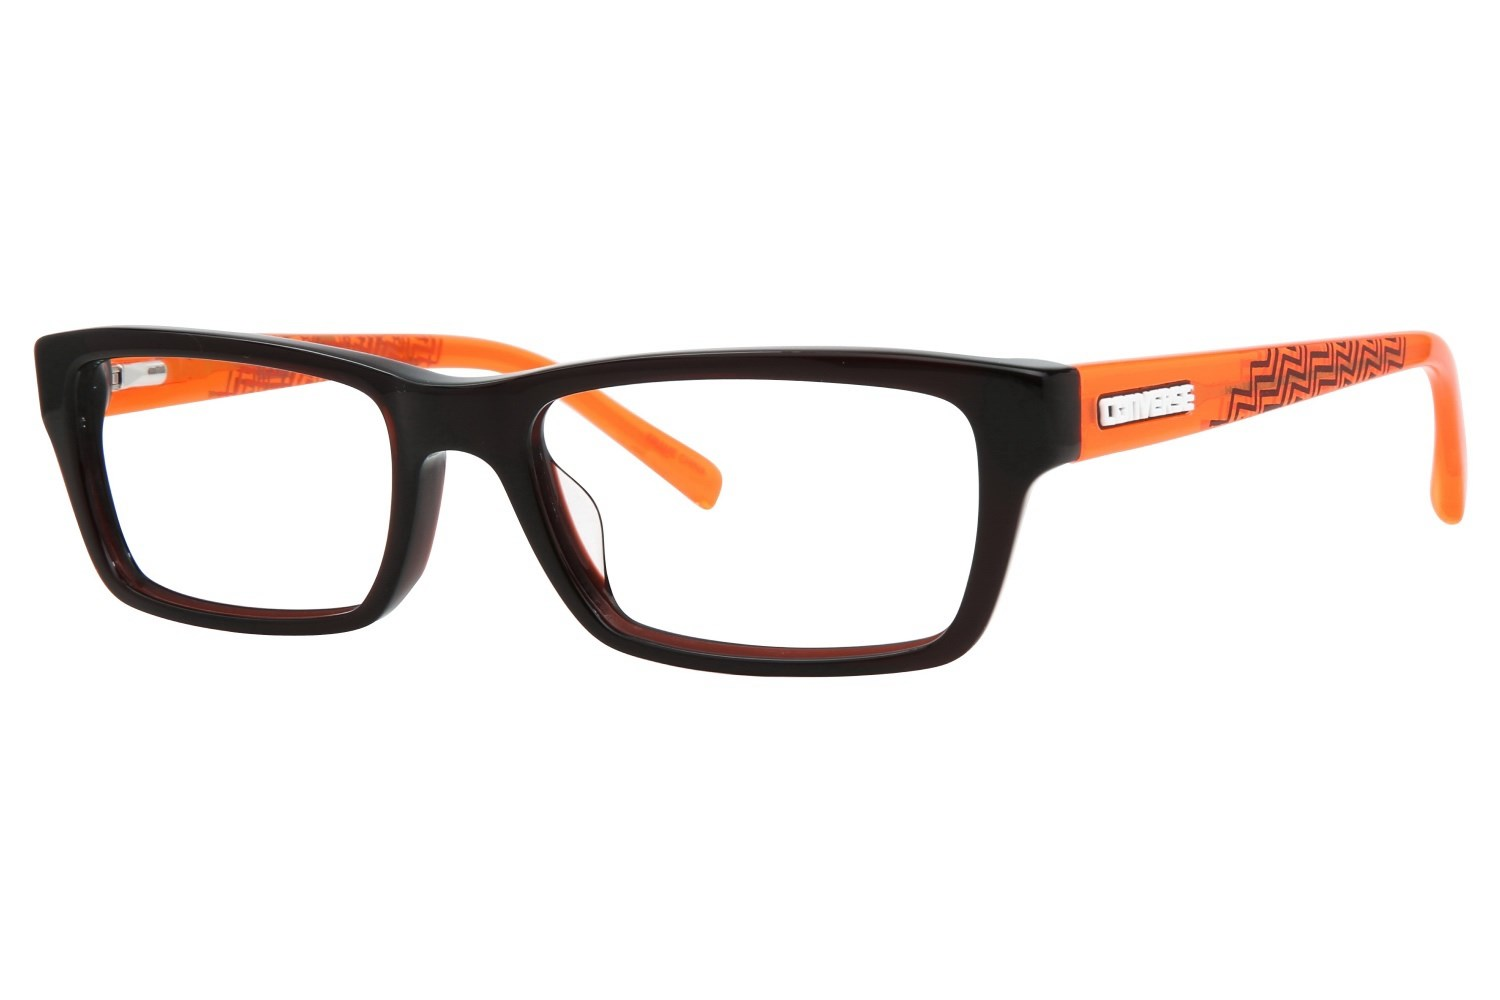 converse-converse-k013-prescription-eyeglasses